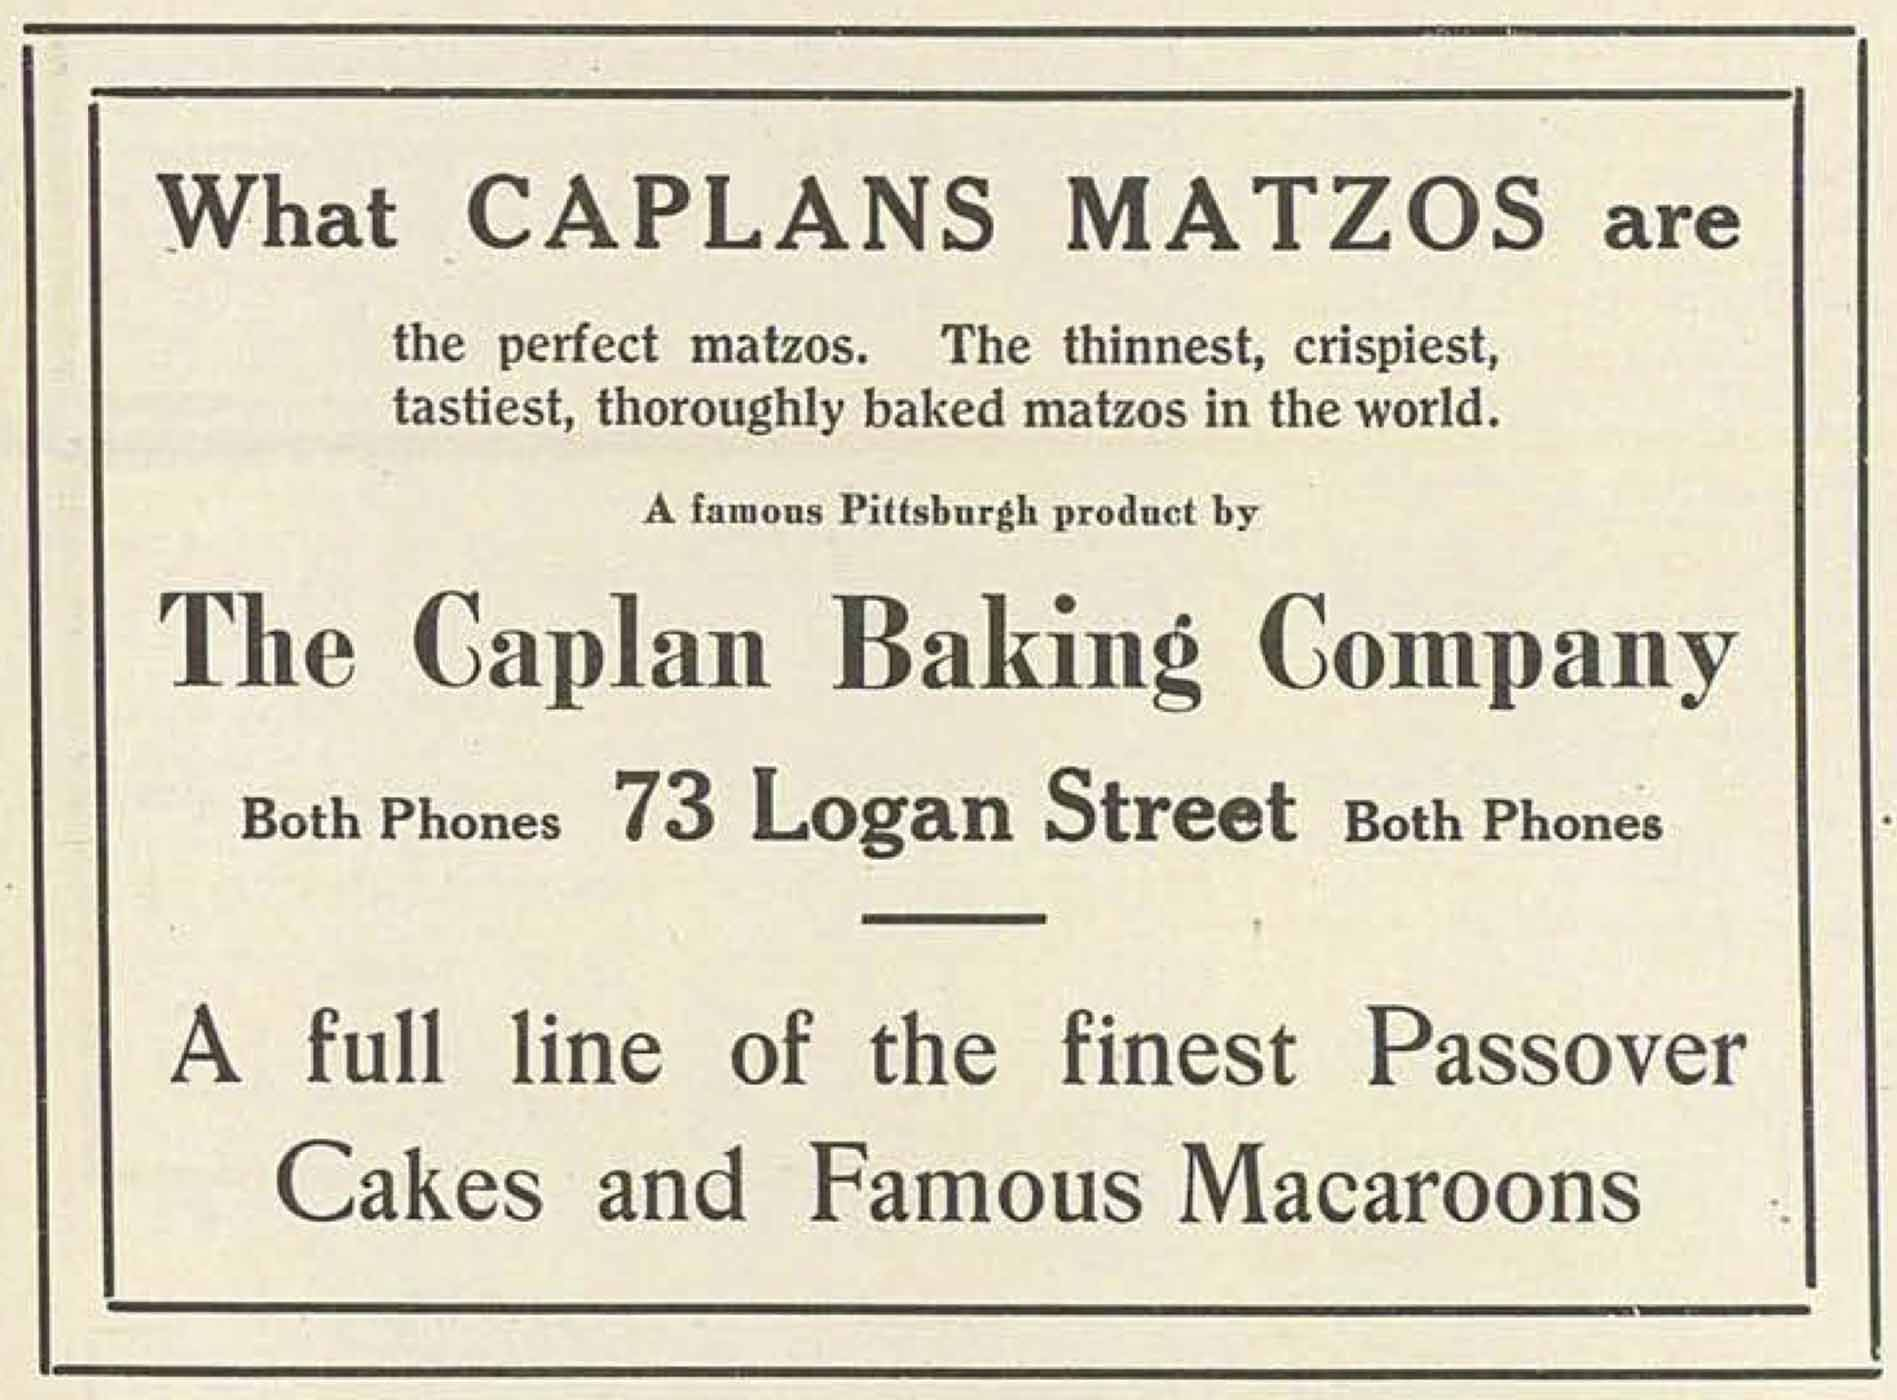 A few years later, in an April 14, 1916 advertisement, the company was promoting itself as the best in the world.